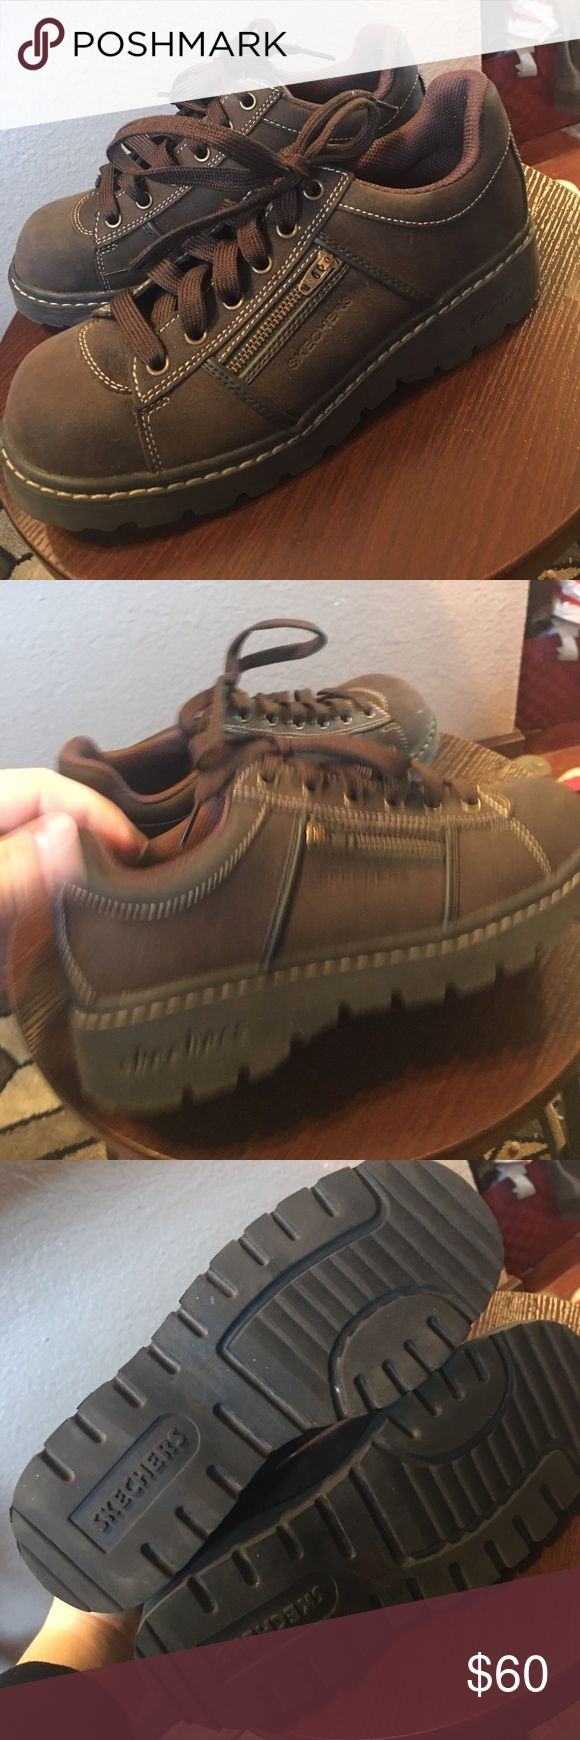 Men's sketchers brown leather upper boots New with out box or tag never warn super on sides brown size 8.5 Skechers Shoes Boots